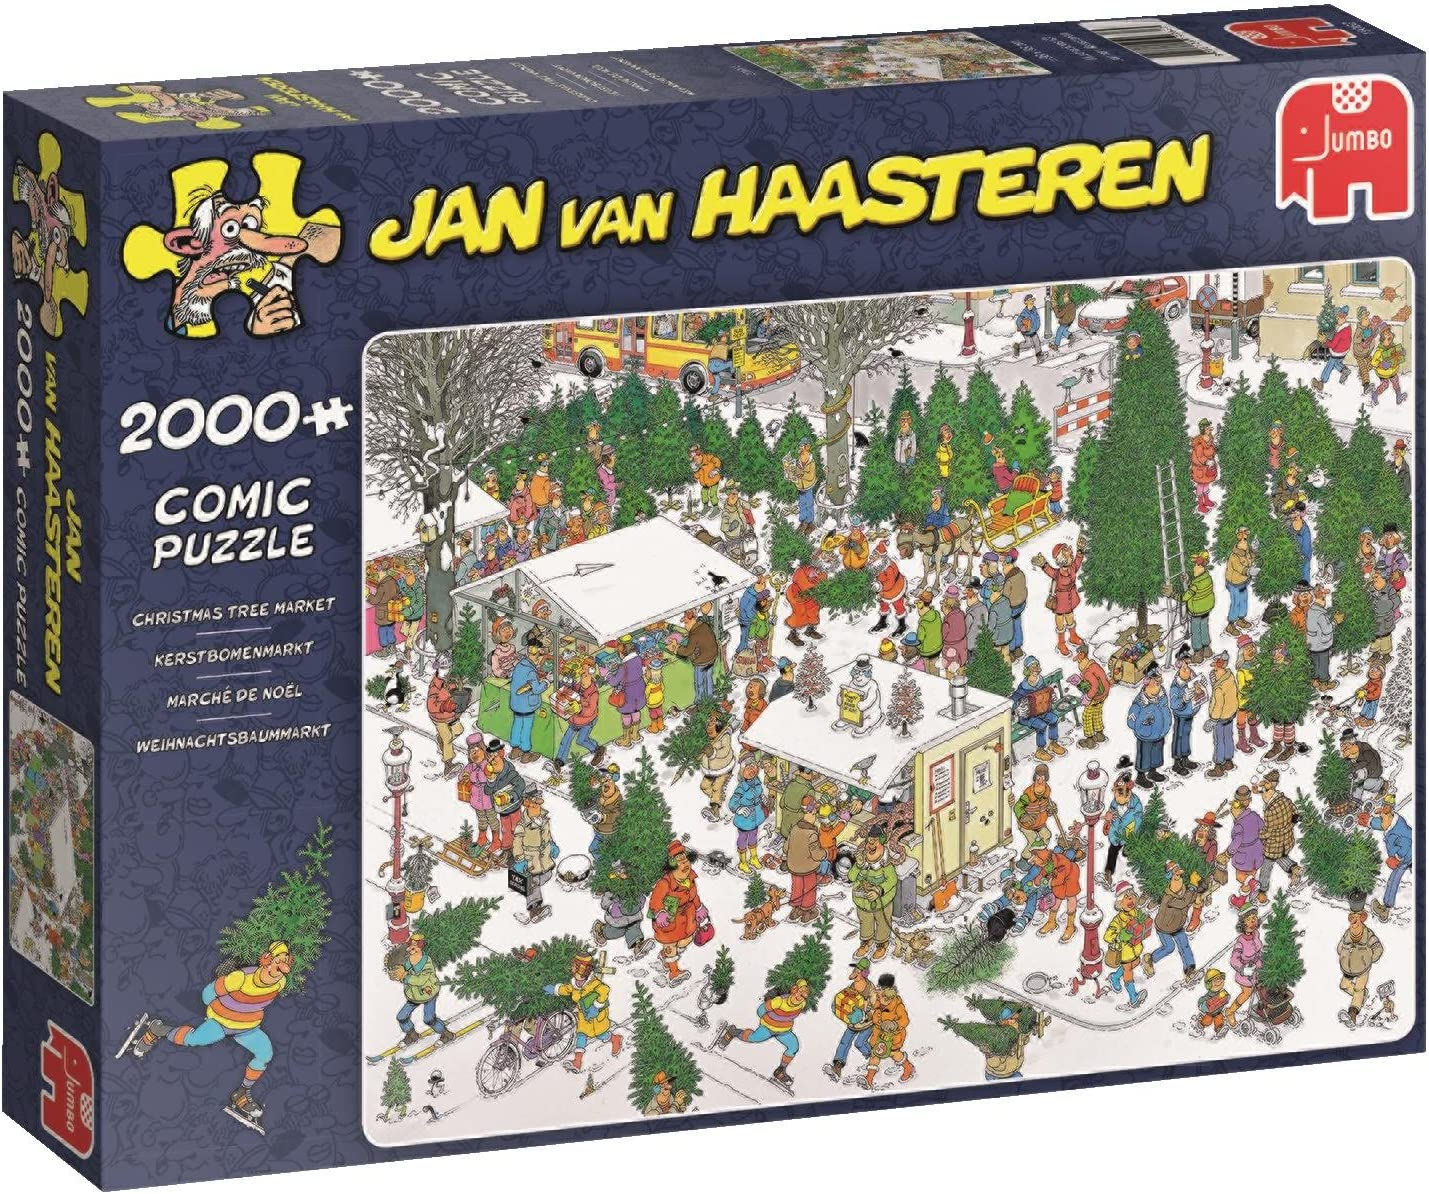 Multi JUMBO 19078 Jan Van Haasteren-The Cattle Market 2000 Piece Jigsaw Puzzle